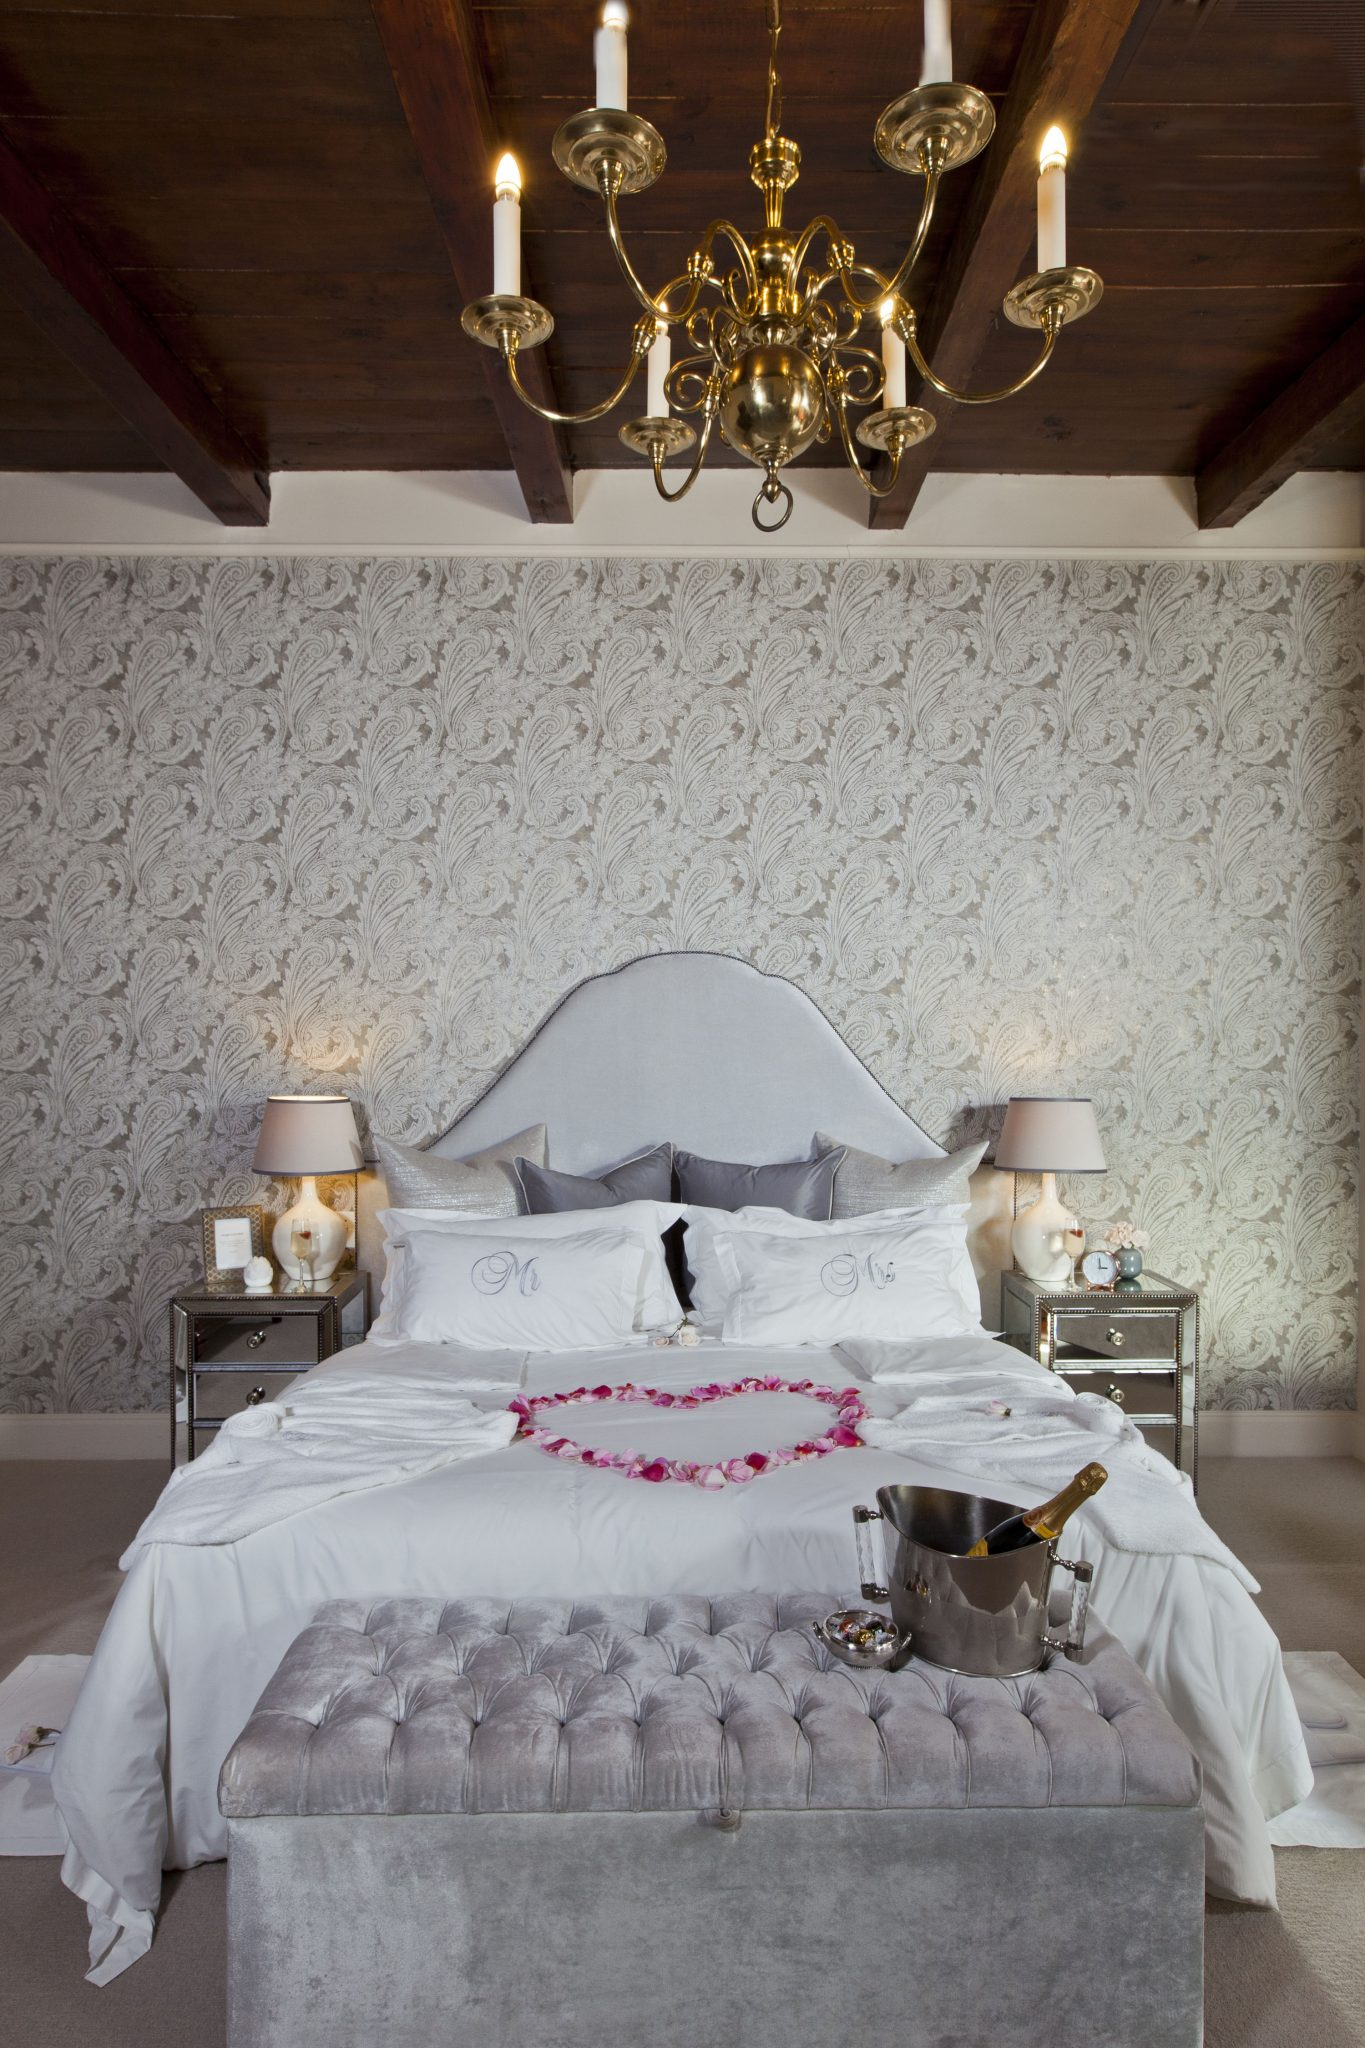 Romance HQ, Steenberg, Eat, Play, Love Special Offer Valentine's Sonia Cabano blog eatdrinkcapetown